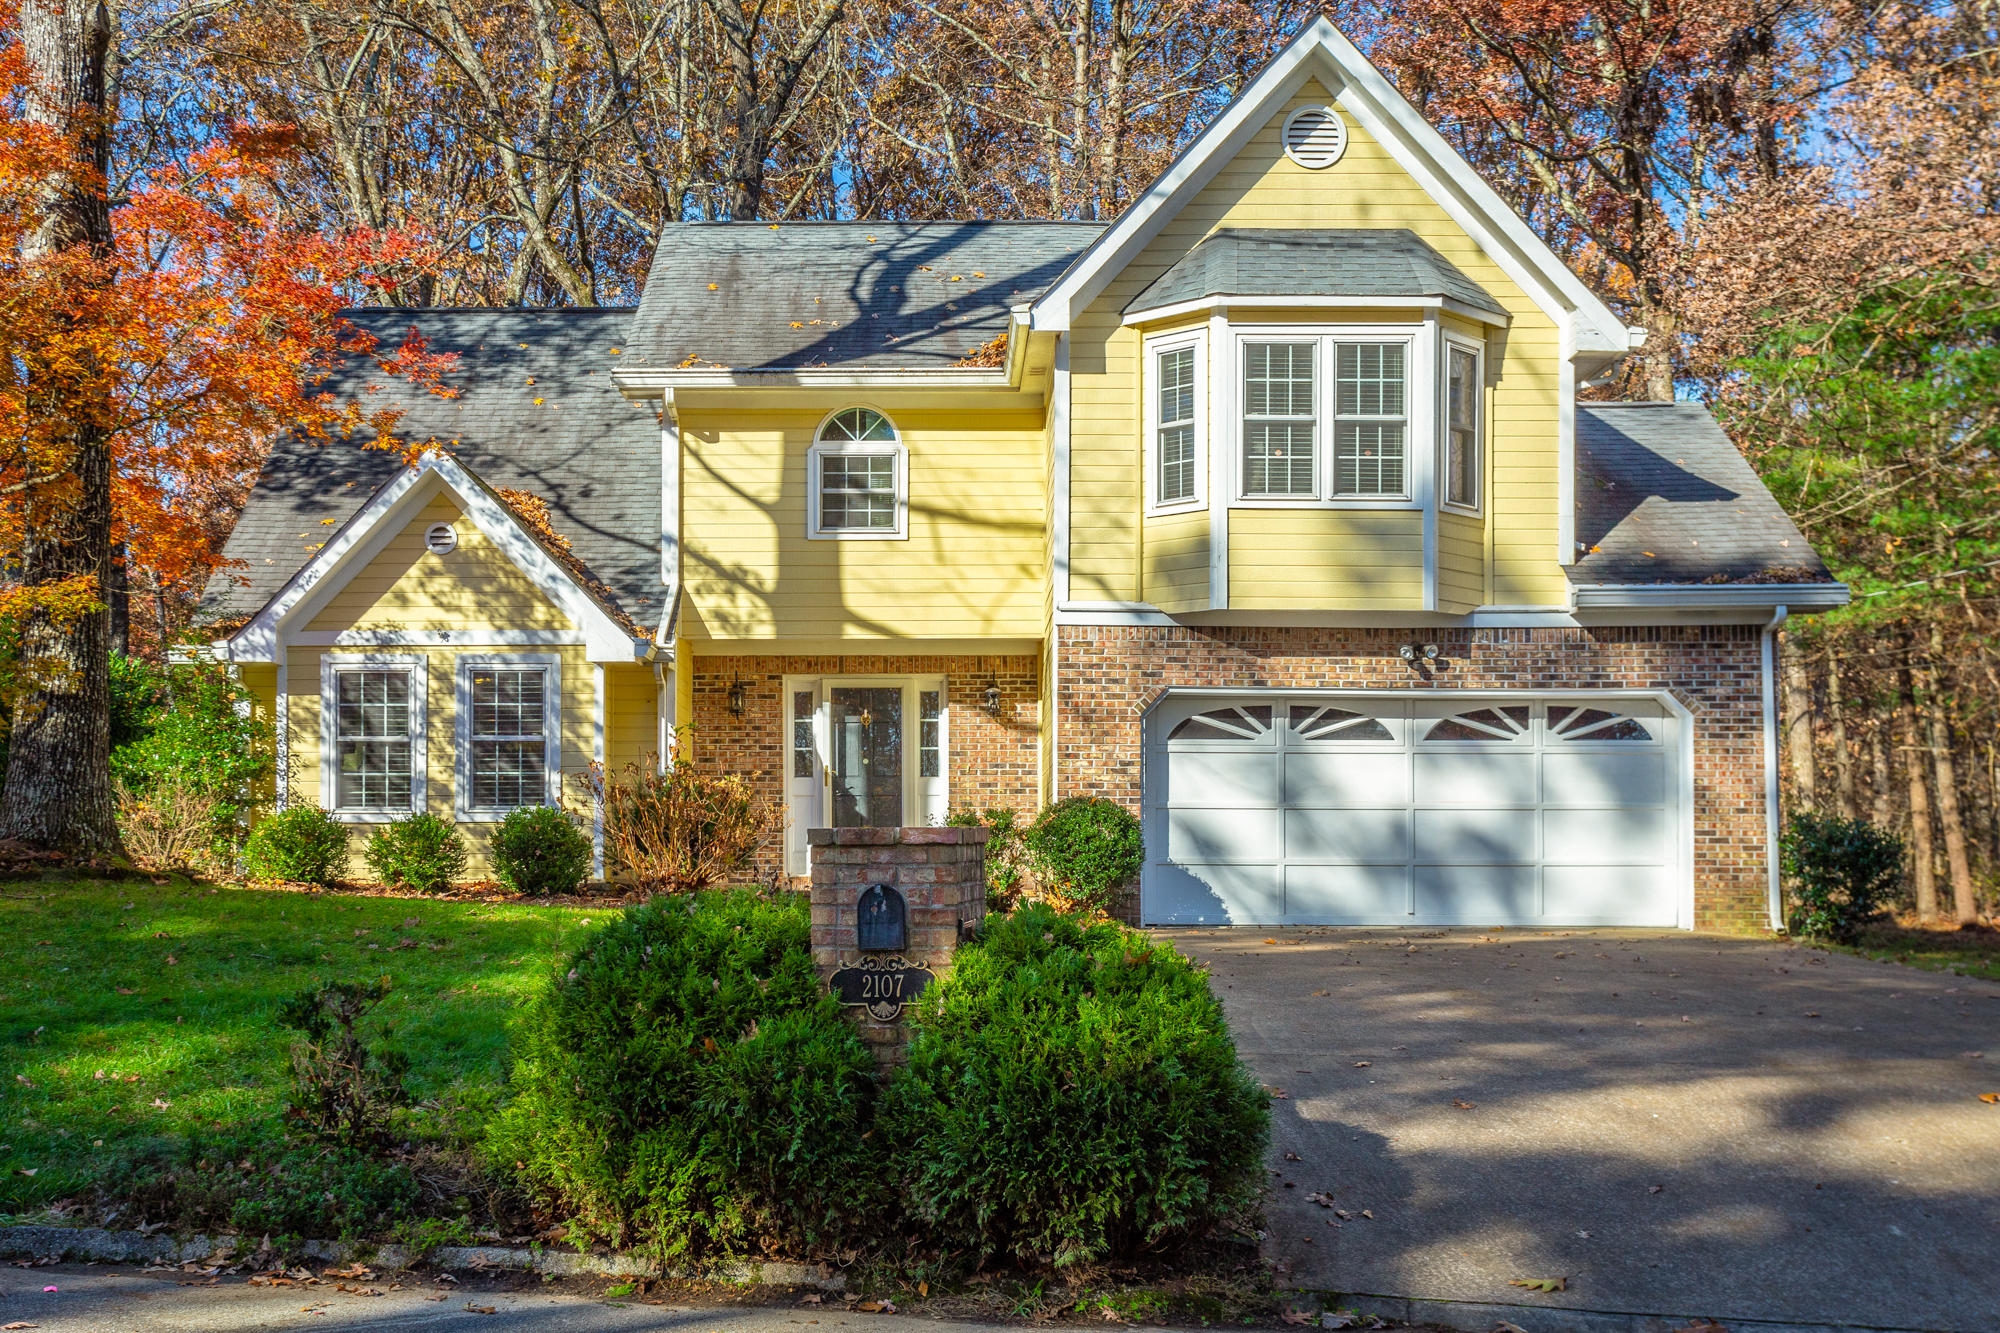 2107 Mourning Dove Ln, Signal Mountain, TN 37377